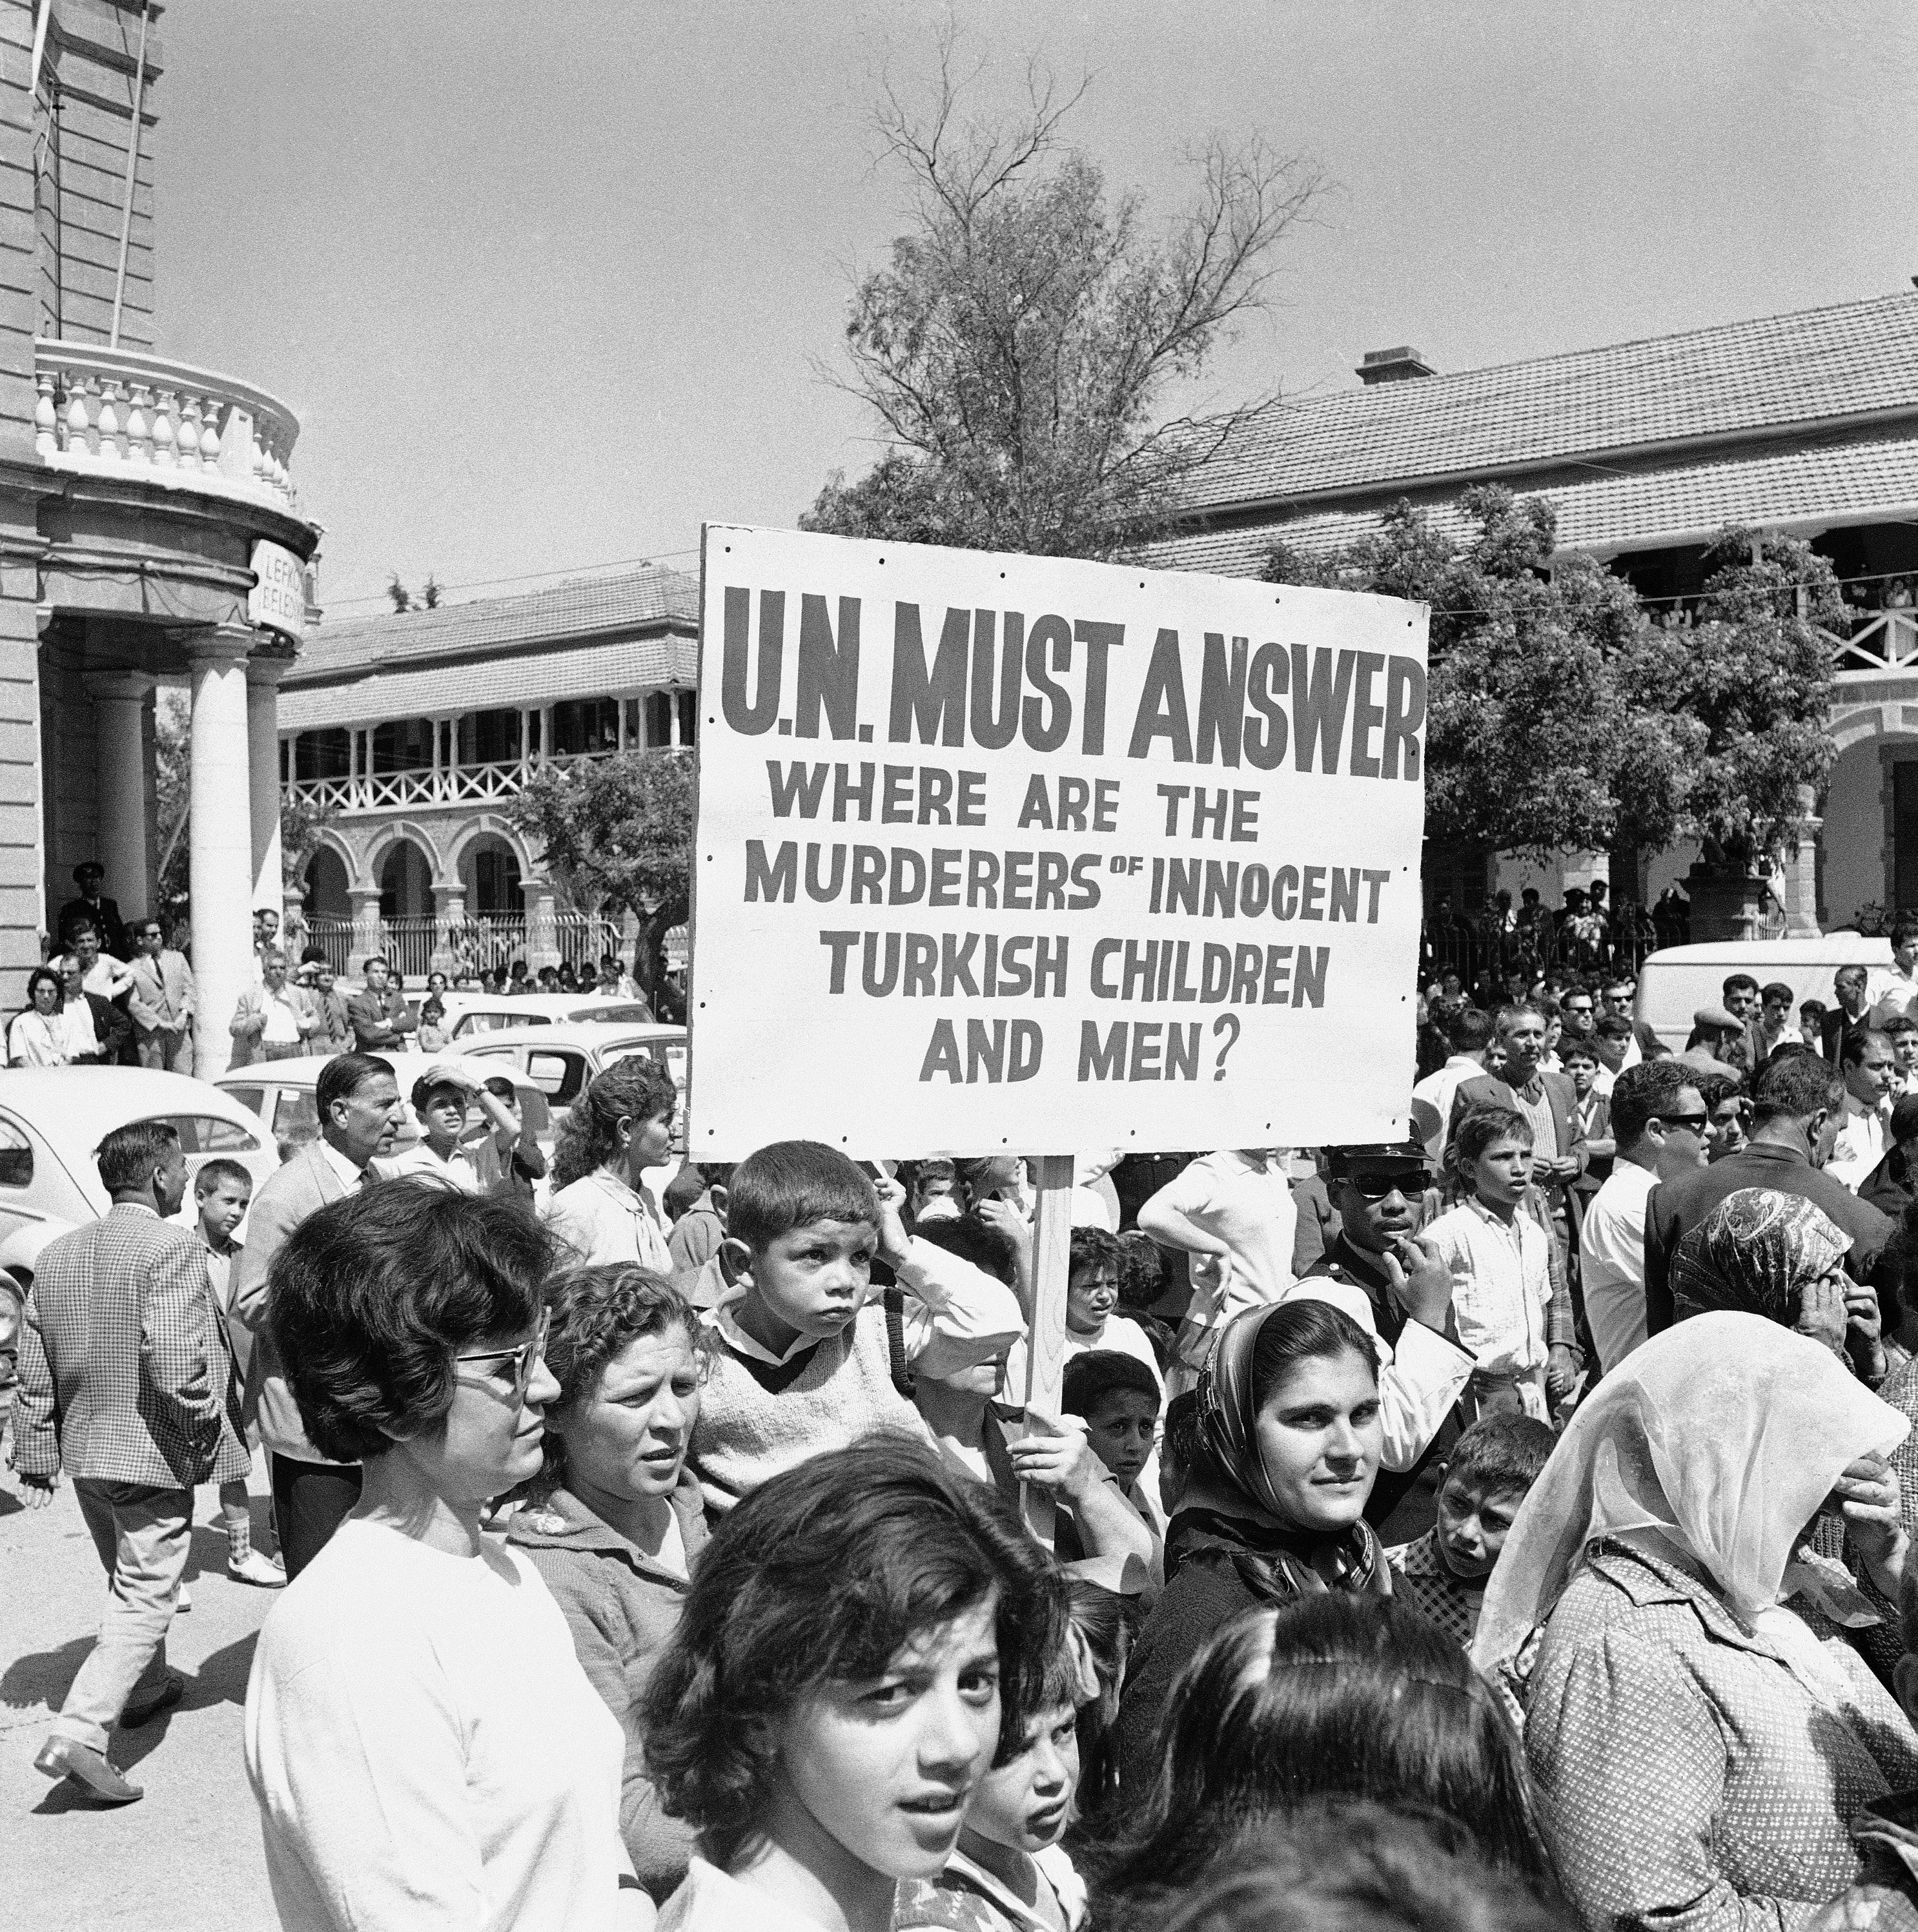 Women and children of Turkish Cypriot community gather in Nicosia's Atatürk Square during demonstration against United Nations on April 26, 1964 in Cyprus. Several thousands persons carrying signs marched through streets of the city calling for ouster of U.N. forces, on the island to end the communal fighting. (AP Photo)